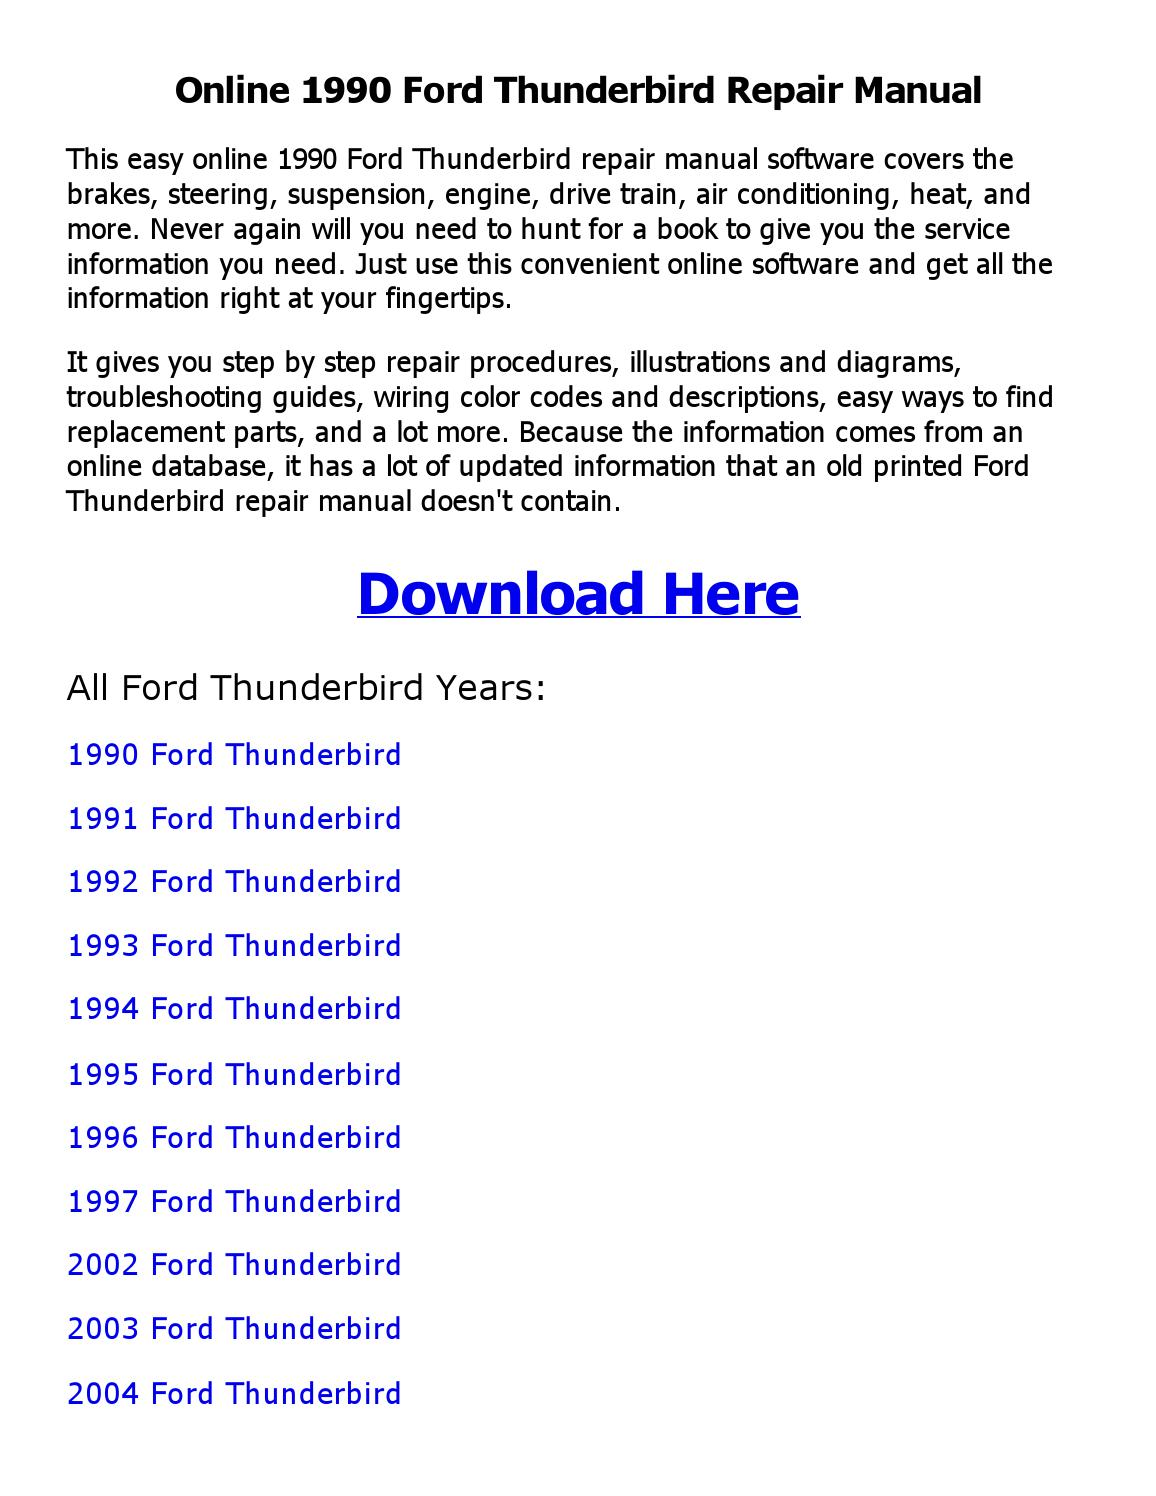 1990 Ford Thunderbird Repair Manual Online By Shoaibsiddique Issuu 1996 Engine Diagram